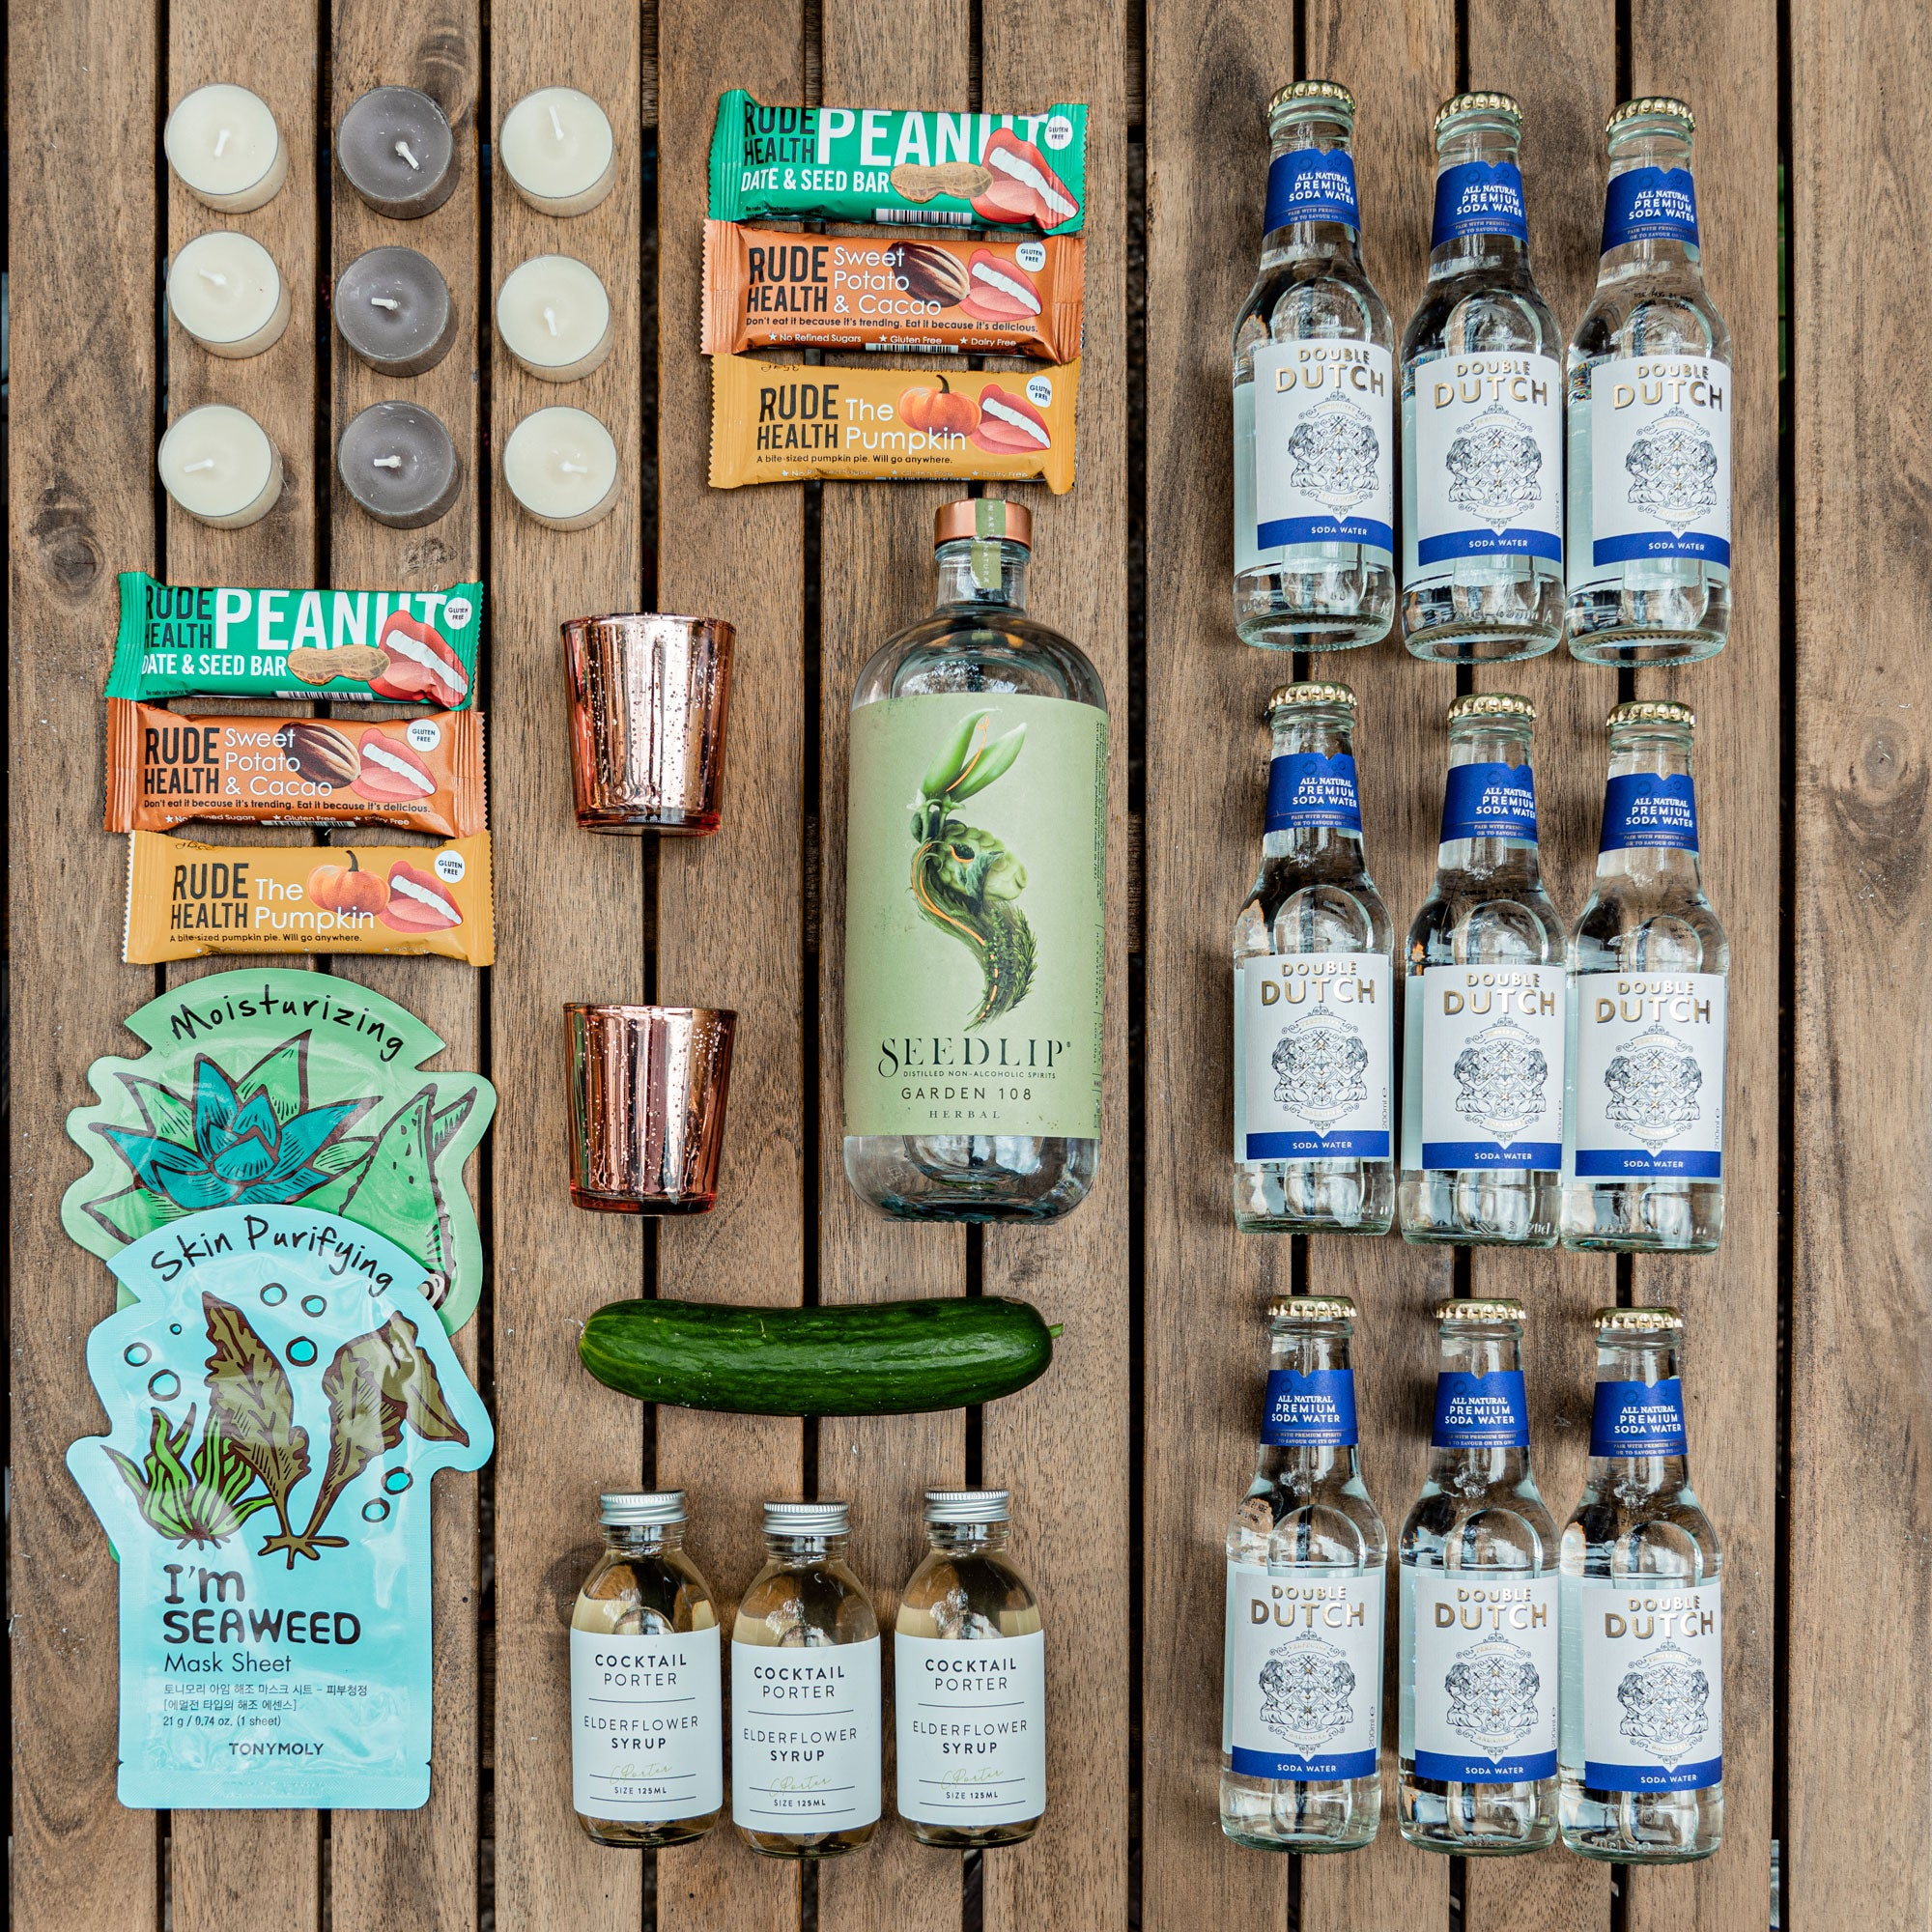 18 Cocktails Seedlip Self Care Spritz Full Size Kit